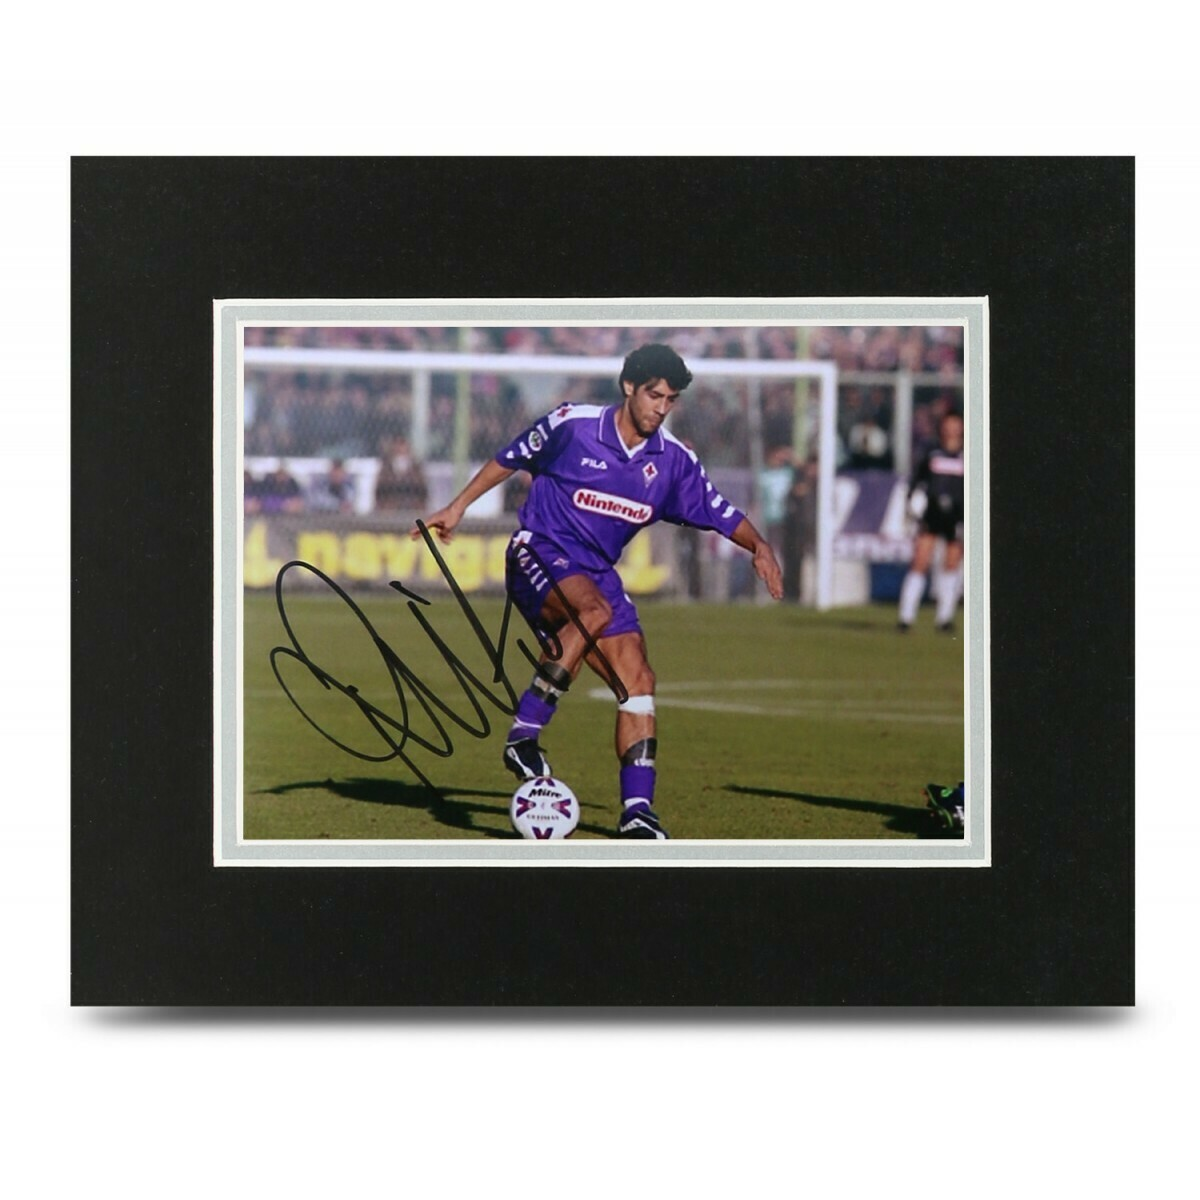 FIORENTINA  FOTO MANUEL RUI COSTA 10 PHOTO RUI COSTA  10*8 DISPLAY  AUTOGRAFATA SIGNED FIORENTINA